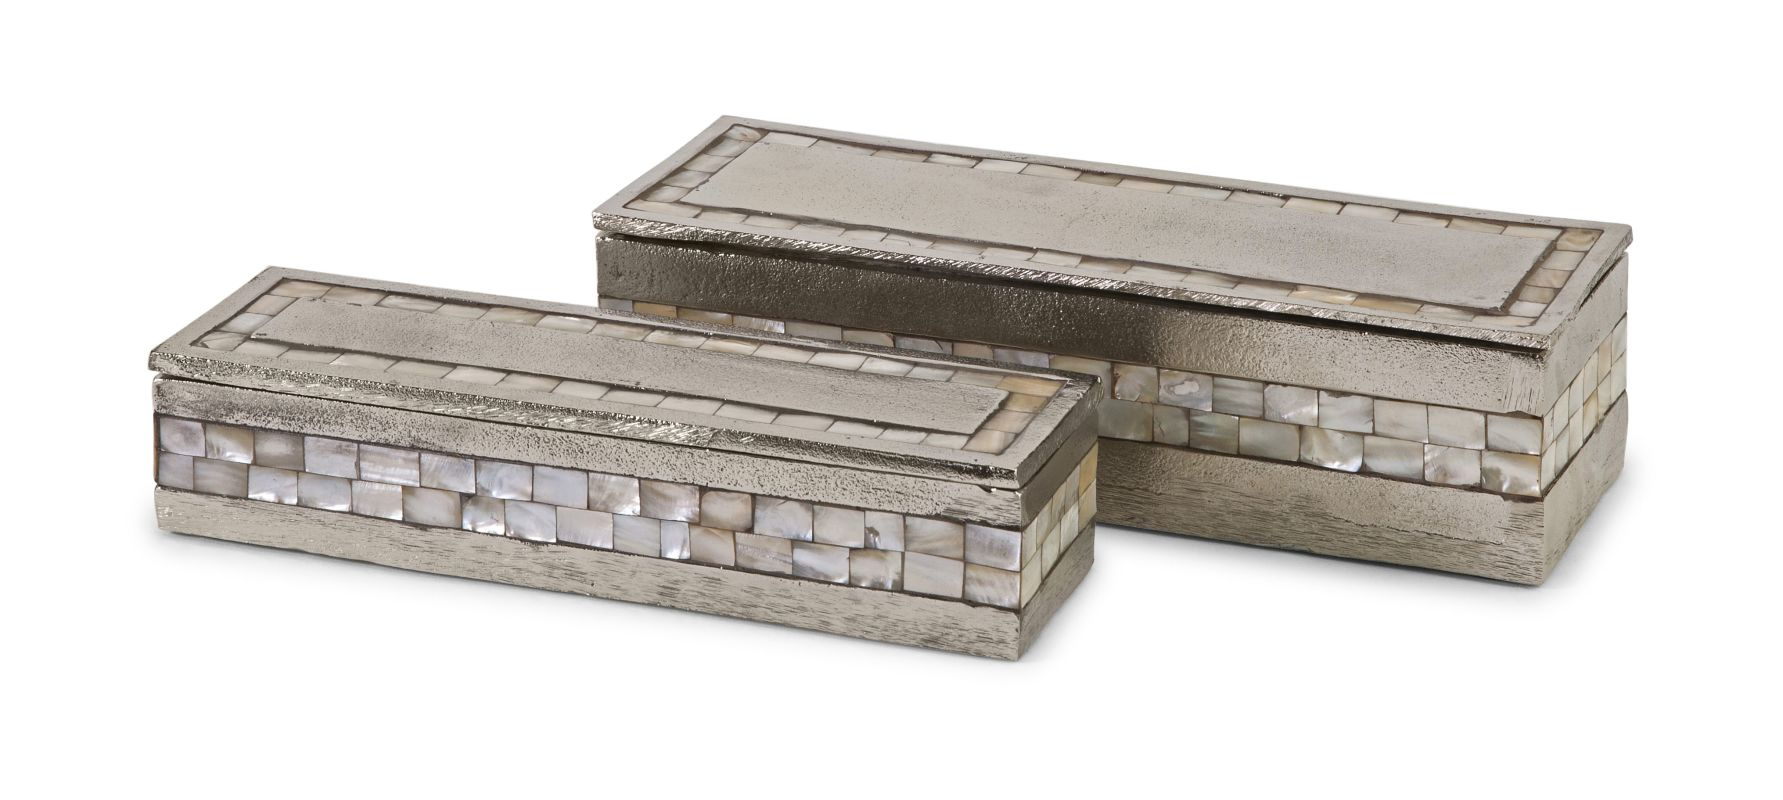 IMAX Home 60985-2 Haines Aluminum Mother of Pearl Boxes - Set of 2 N/A